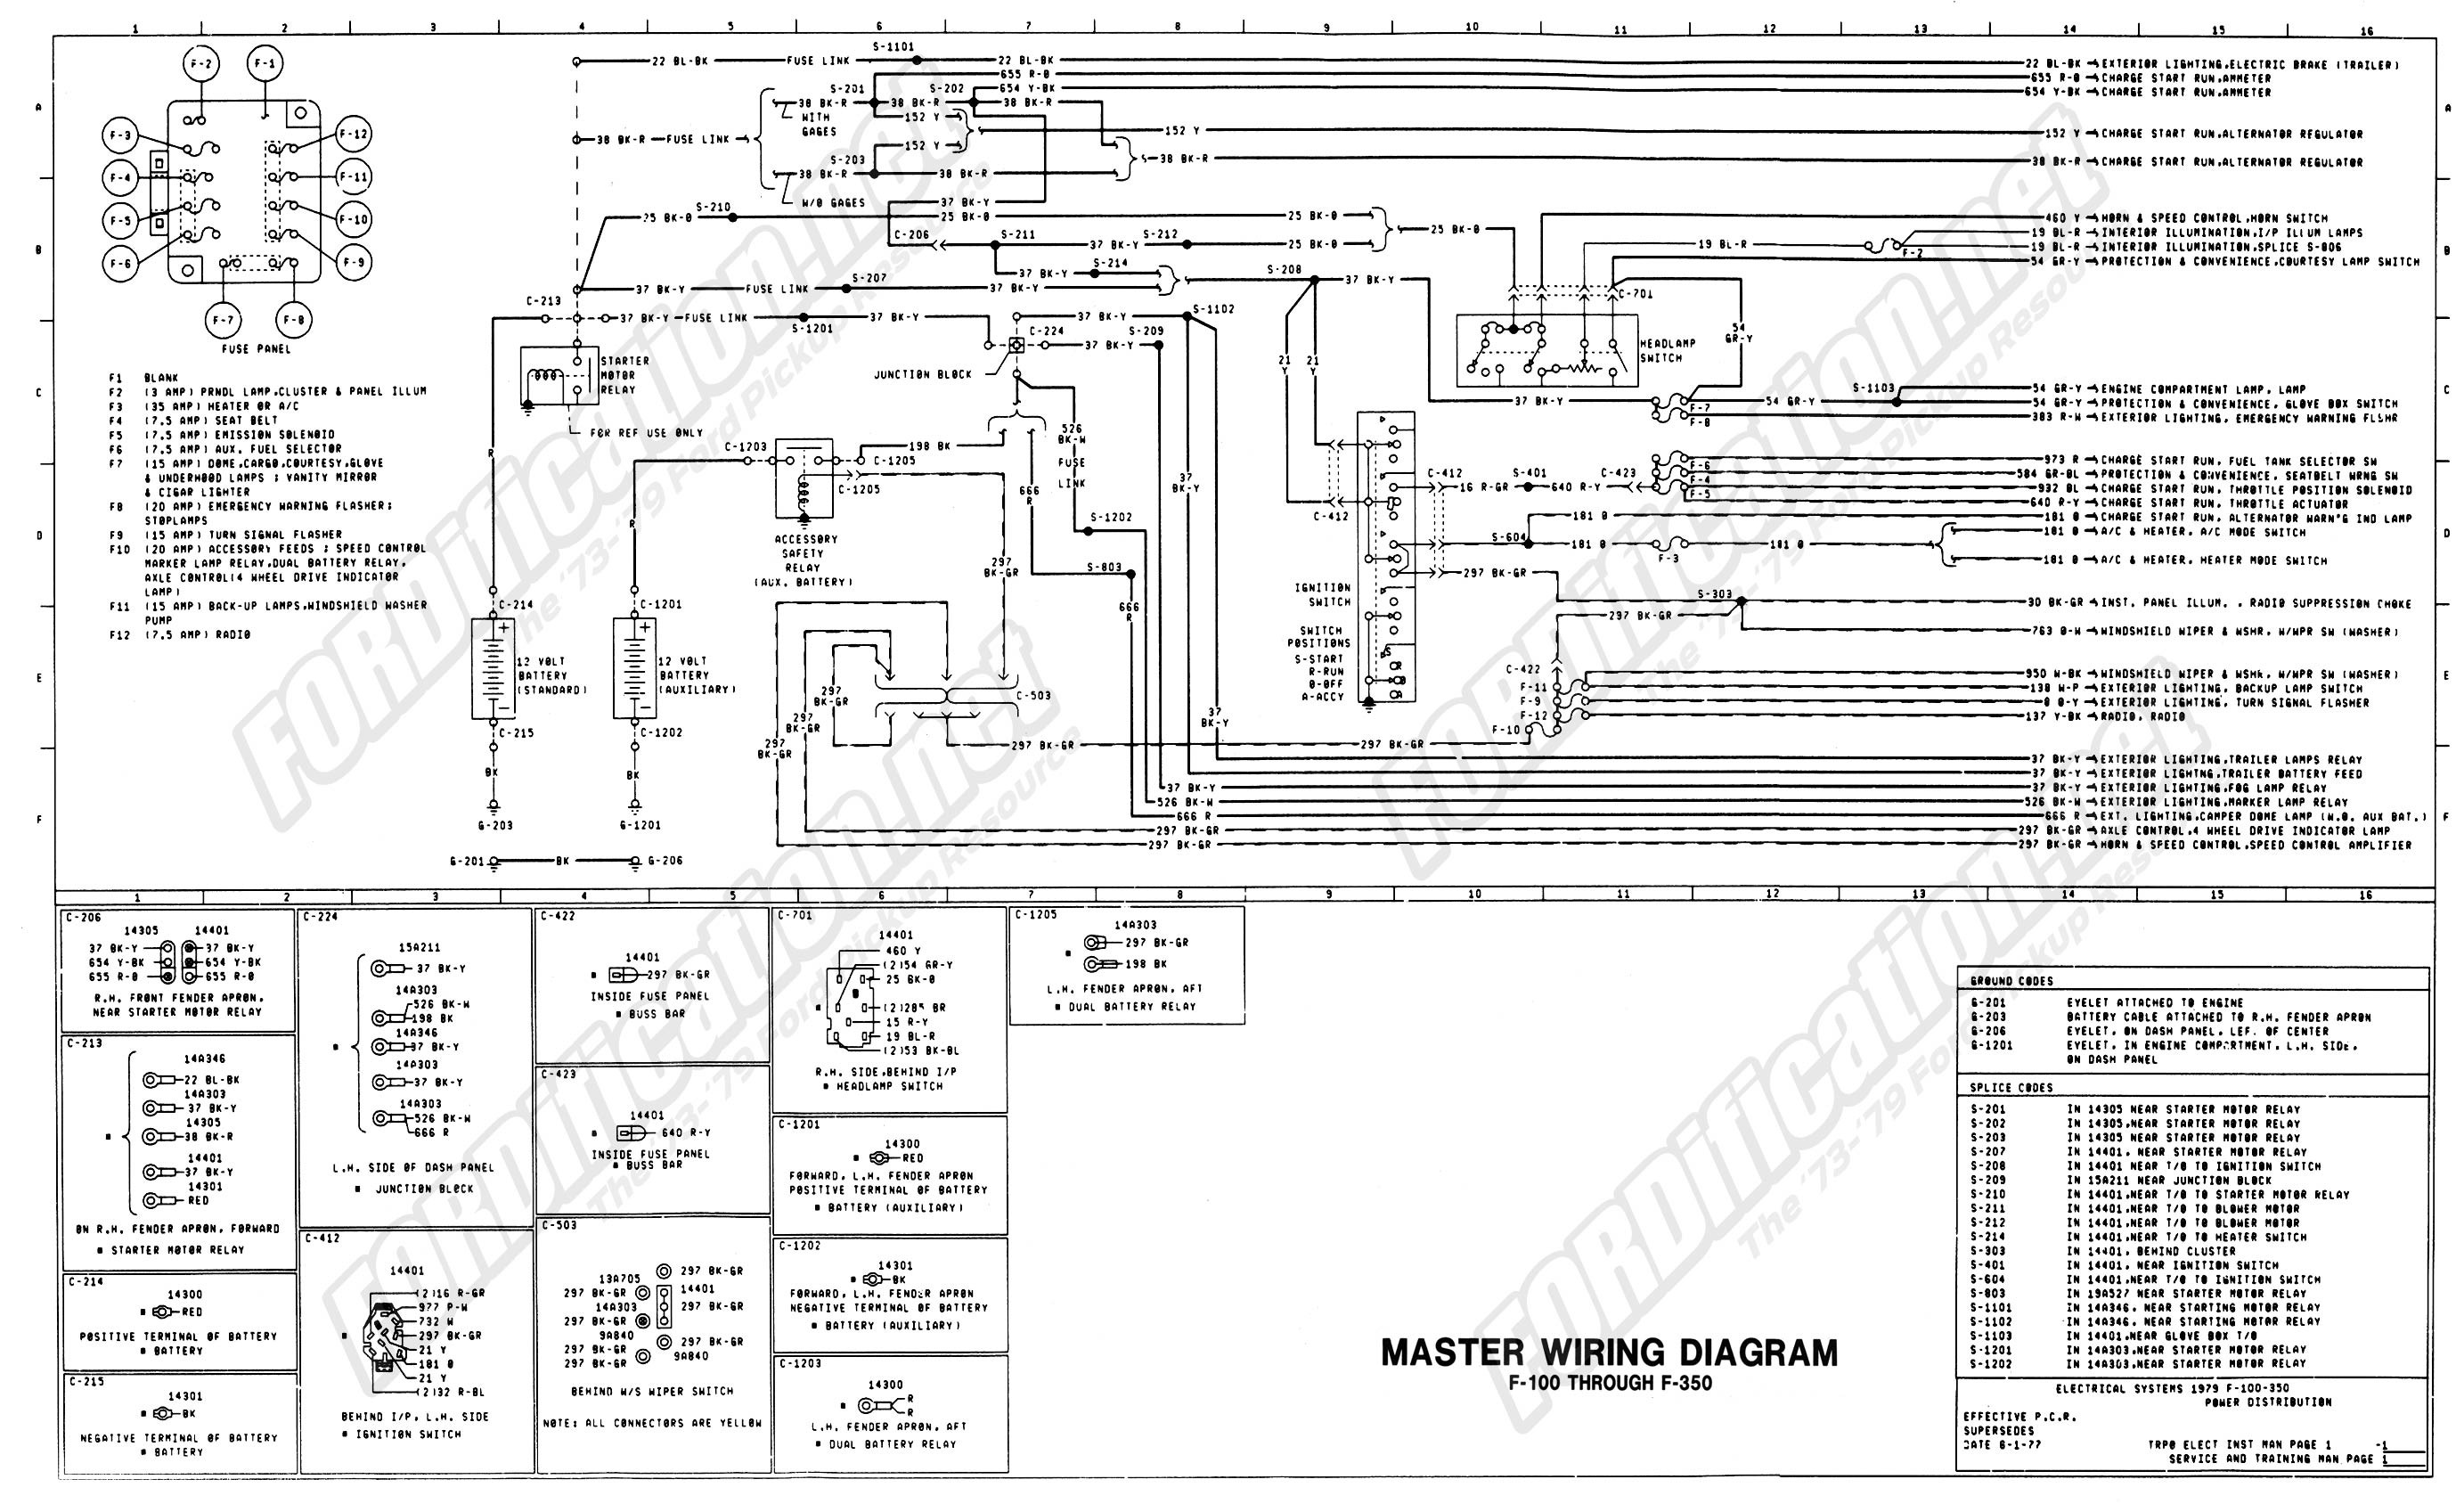 2003 toyota Tacoma Tail Light Wiring Diagram F150 Wiring Harness Further 1970 ford torino Ignition Wiring Diagram Of 2003 toyota Tacoma Tail Light Wiring Diagram